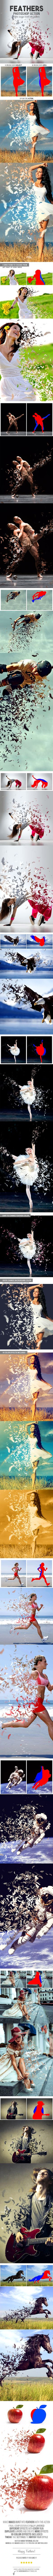 Feathers Photoshop Action - Photo Effects Actions